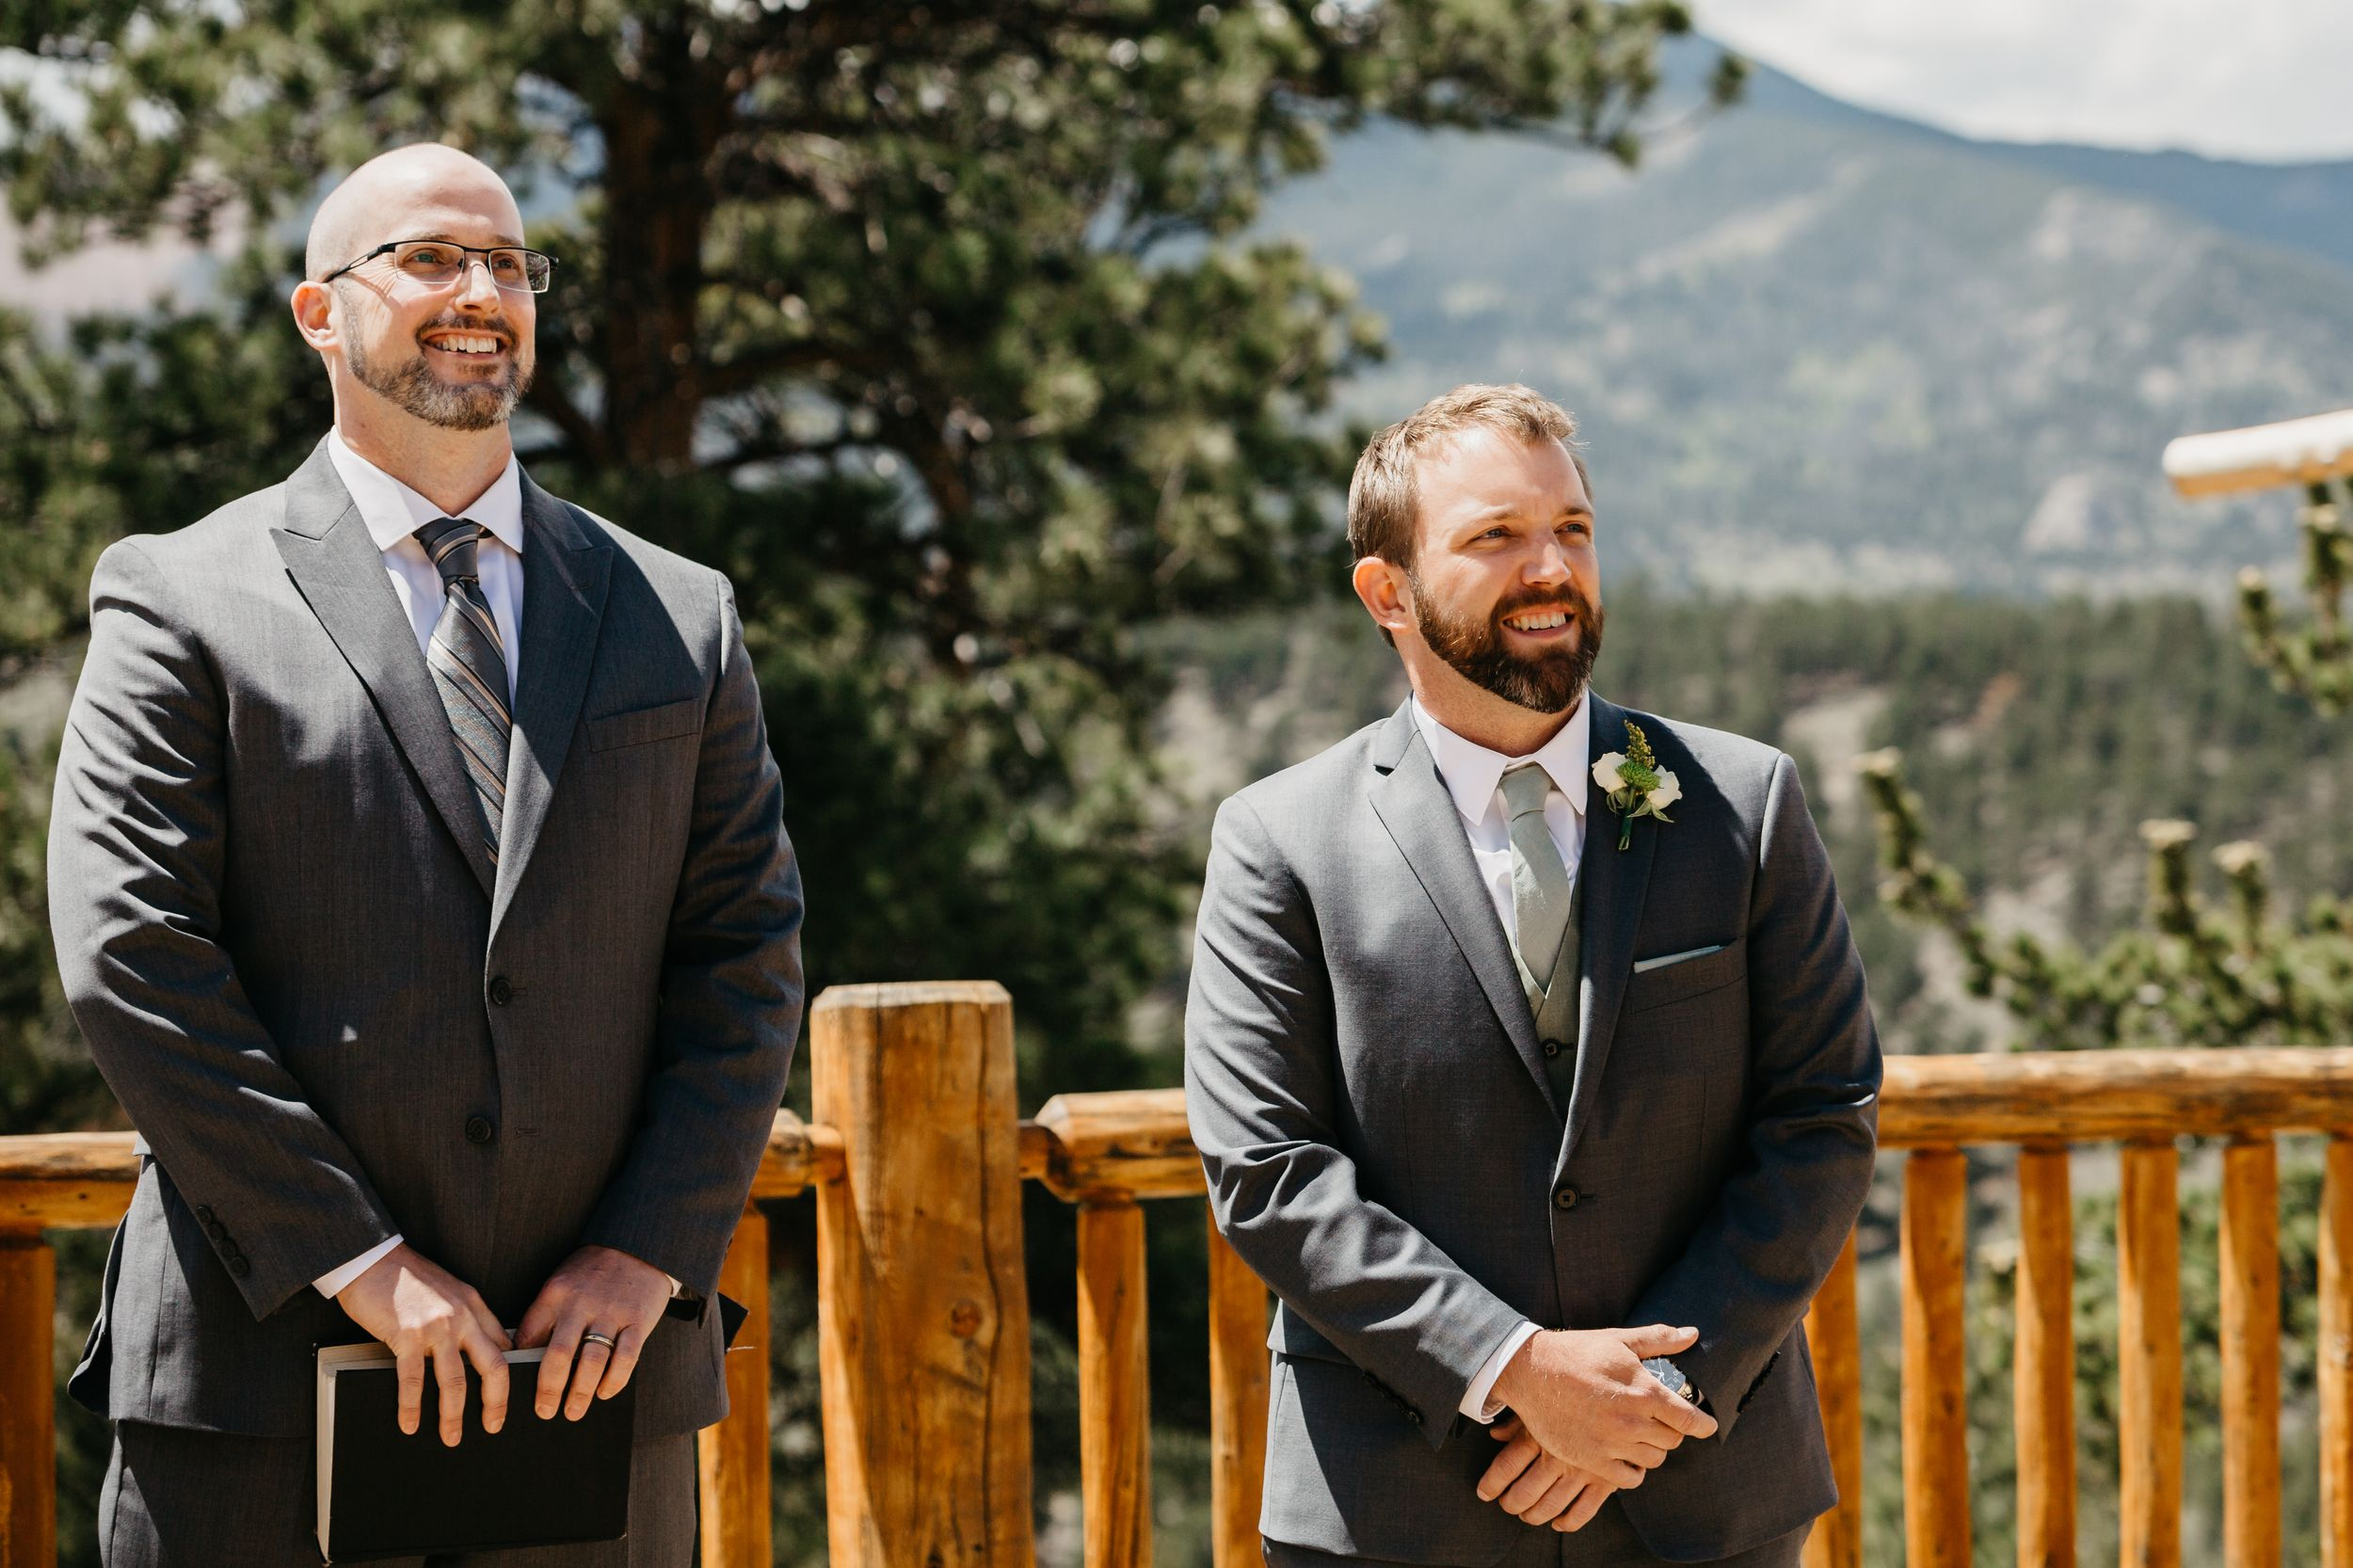 groom first look, walking down the aisle, ceremony, photography, colorado, estes park, forest wedding, classy, timeless